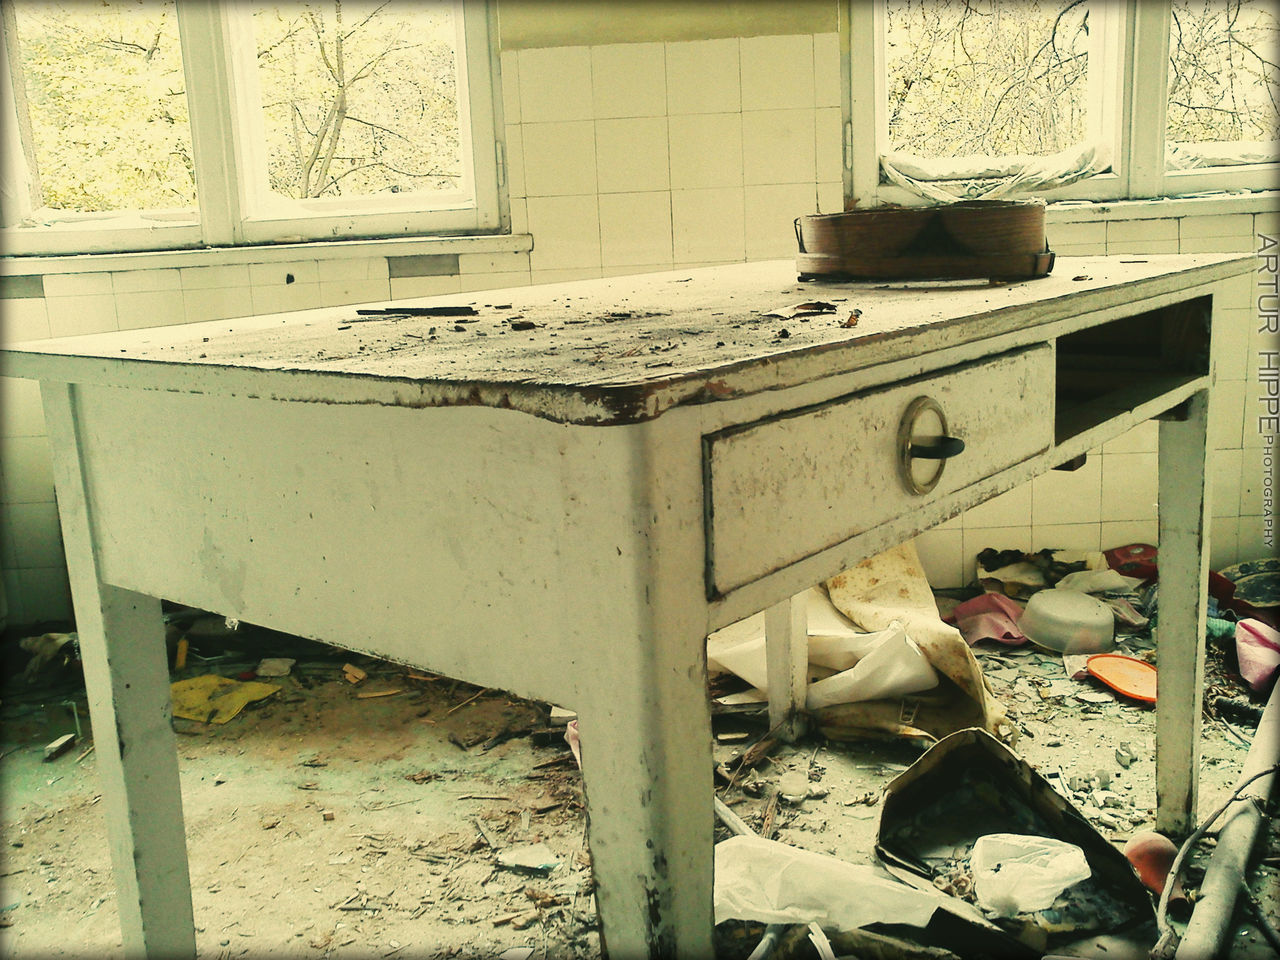 domestic kitchen, kitchen, domestic room, messy, abandoned, no people, indoors, damaged, stove, home interior, day, cabinet, mammal, animal themes